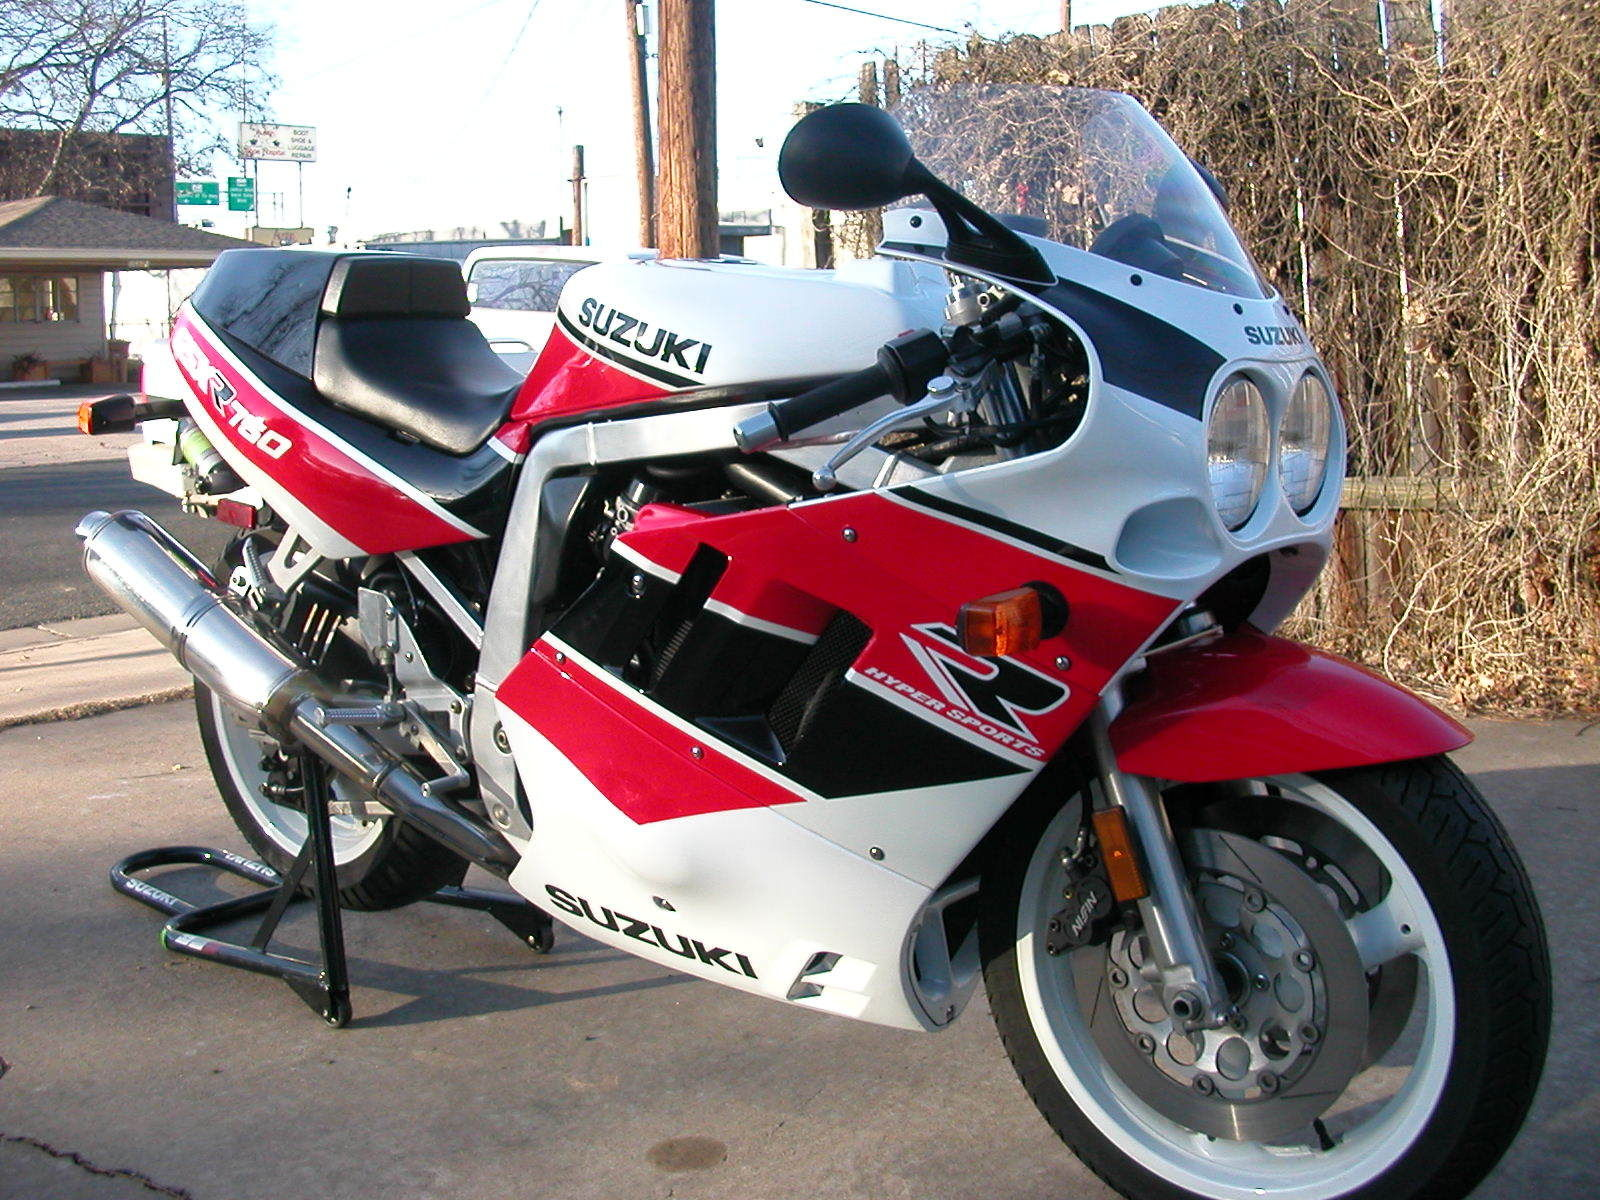 one owner 1990 suzuki gsx r 750 with just 2600 miles rare sportbikes for sale. Black Bedroom Furniture Sets. Home Design Ideas